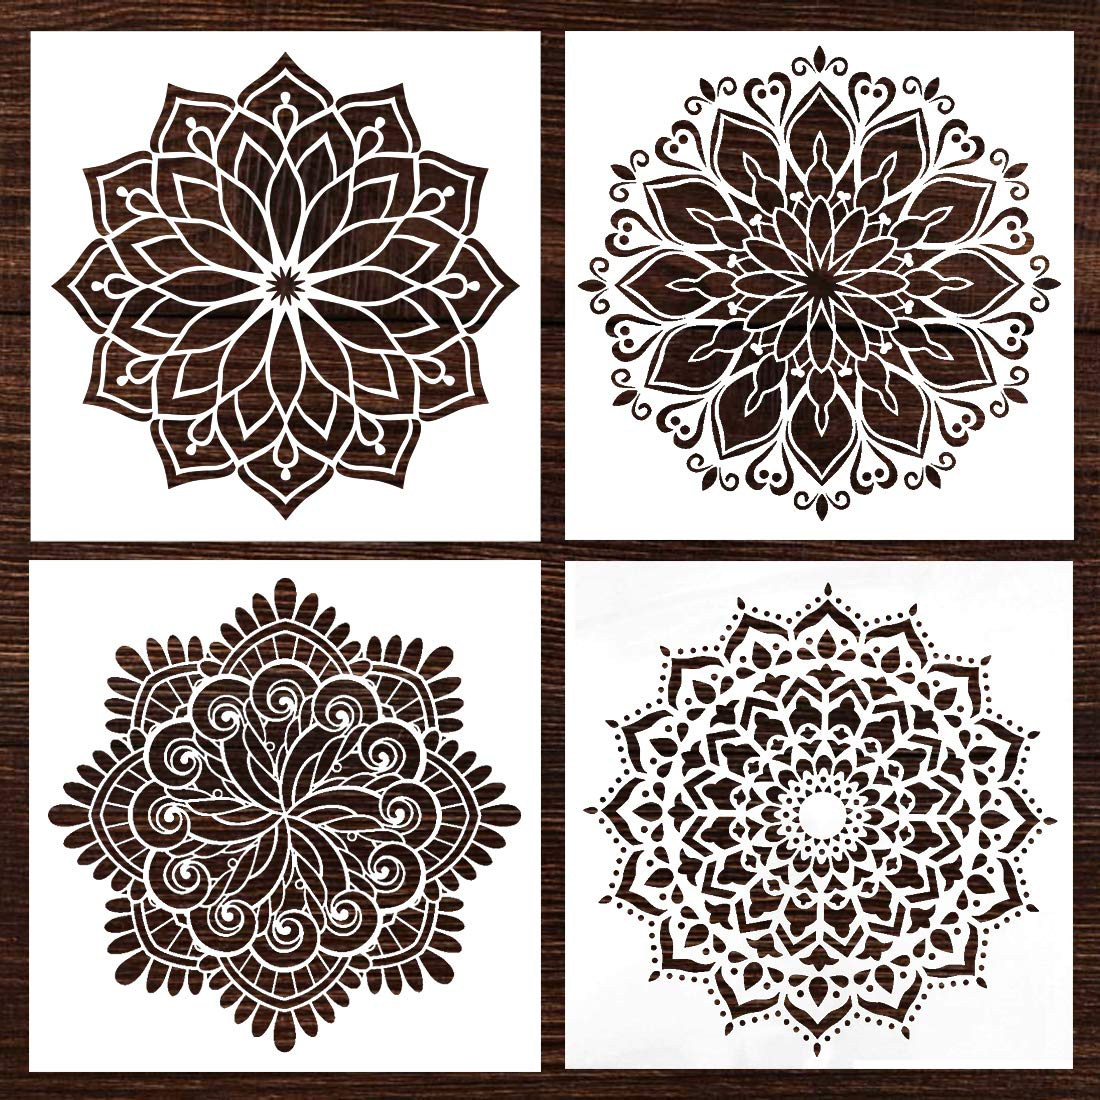 Mandala Wall Wood Furniture Canvas Tile Fabric Painting Stencil, fit for Home DIY Decor, Large Size Paint Stencils, Reusable (12x12 Inch,4pcs) by ATHPIK